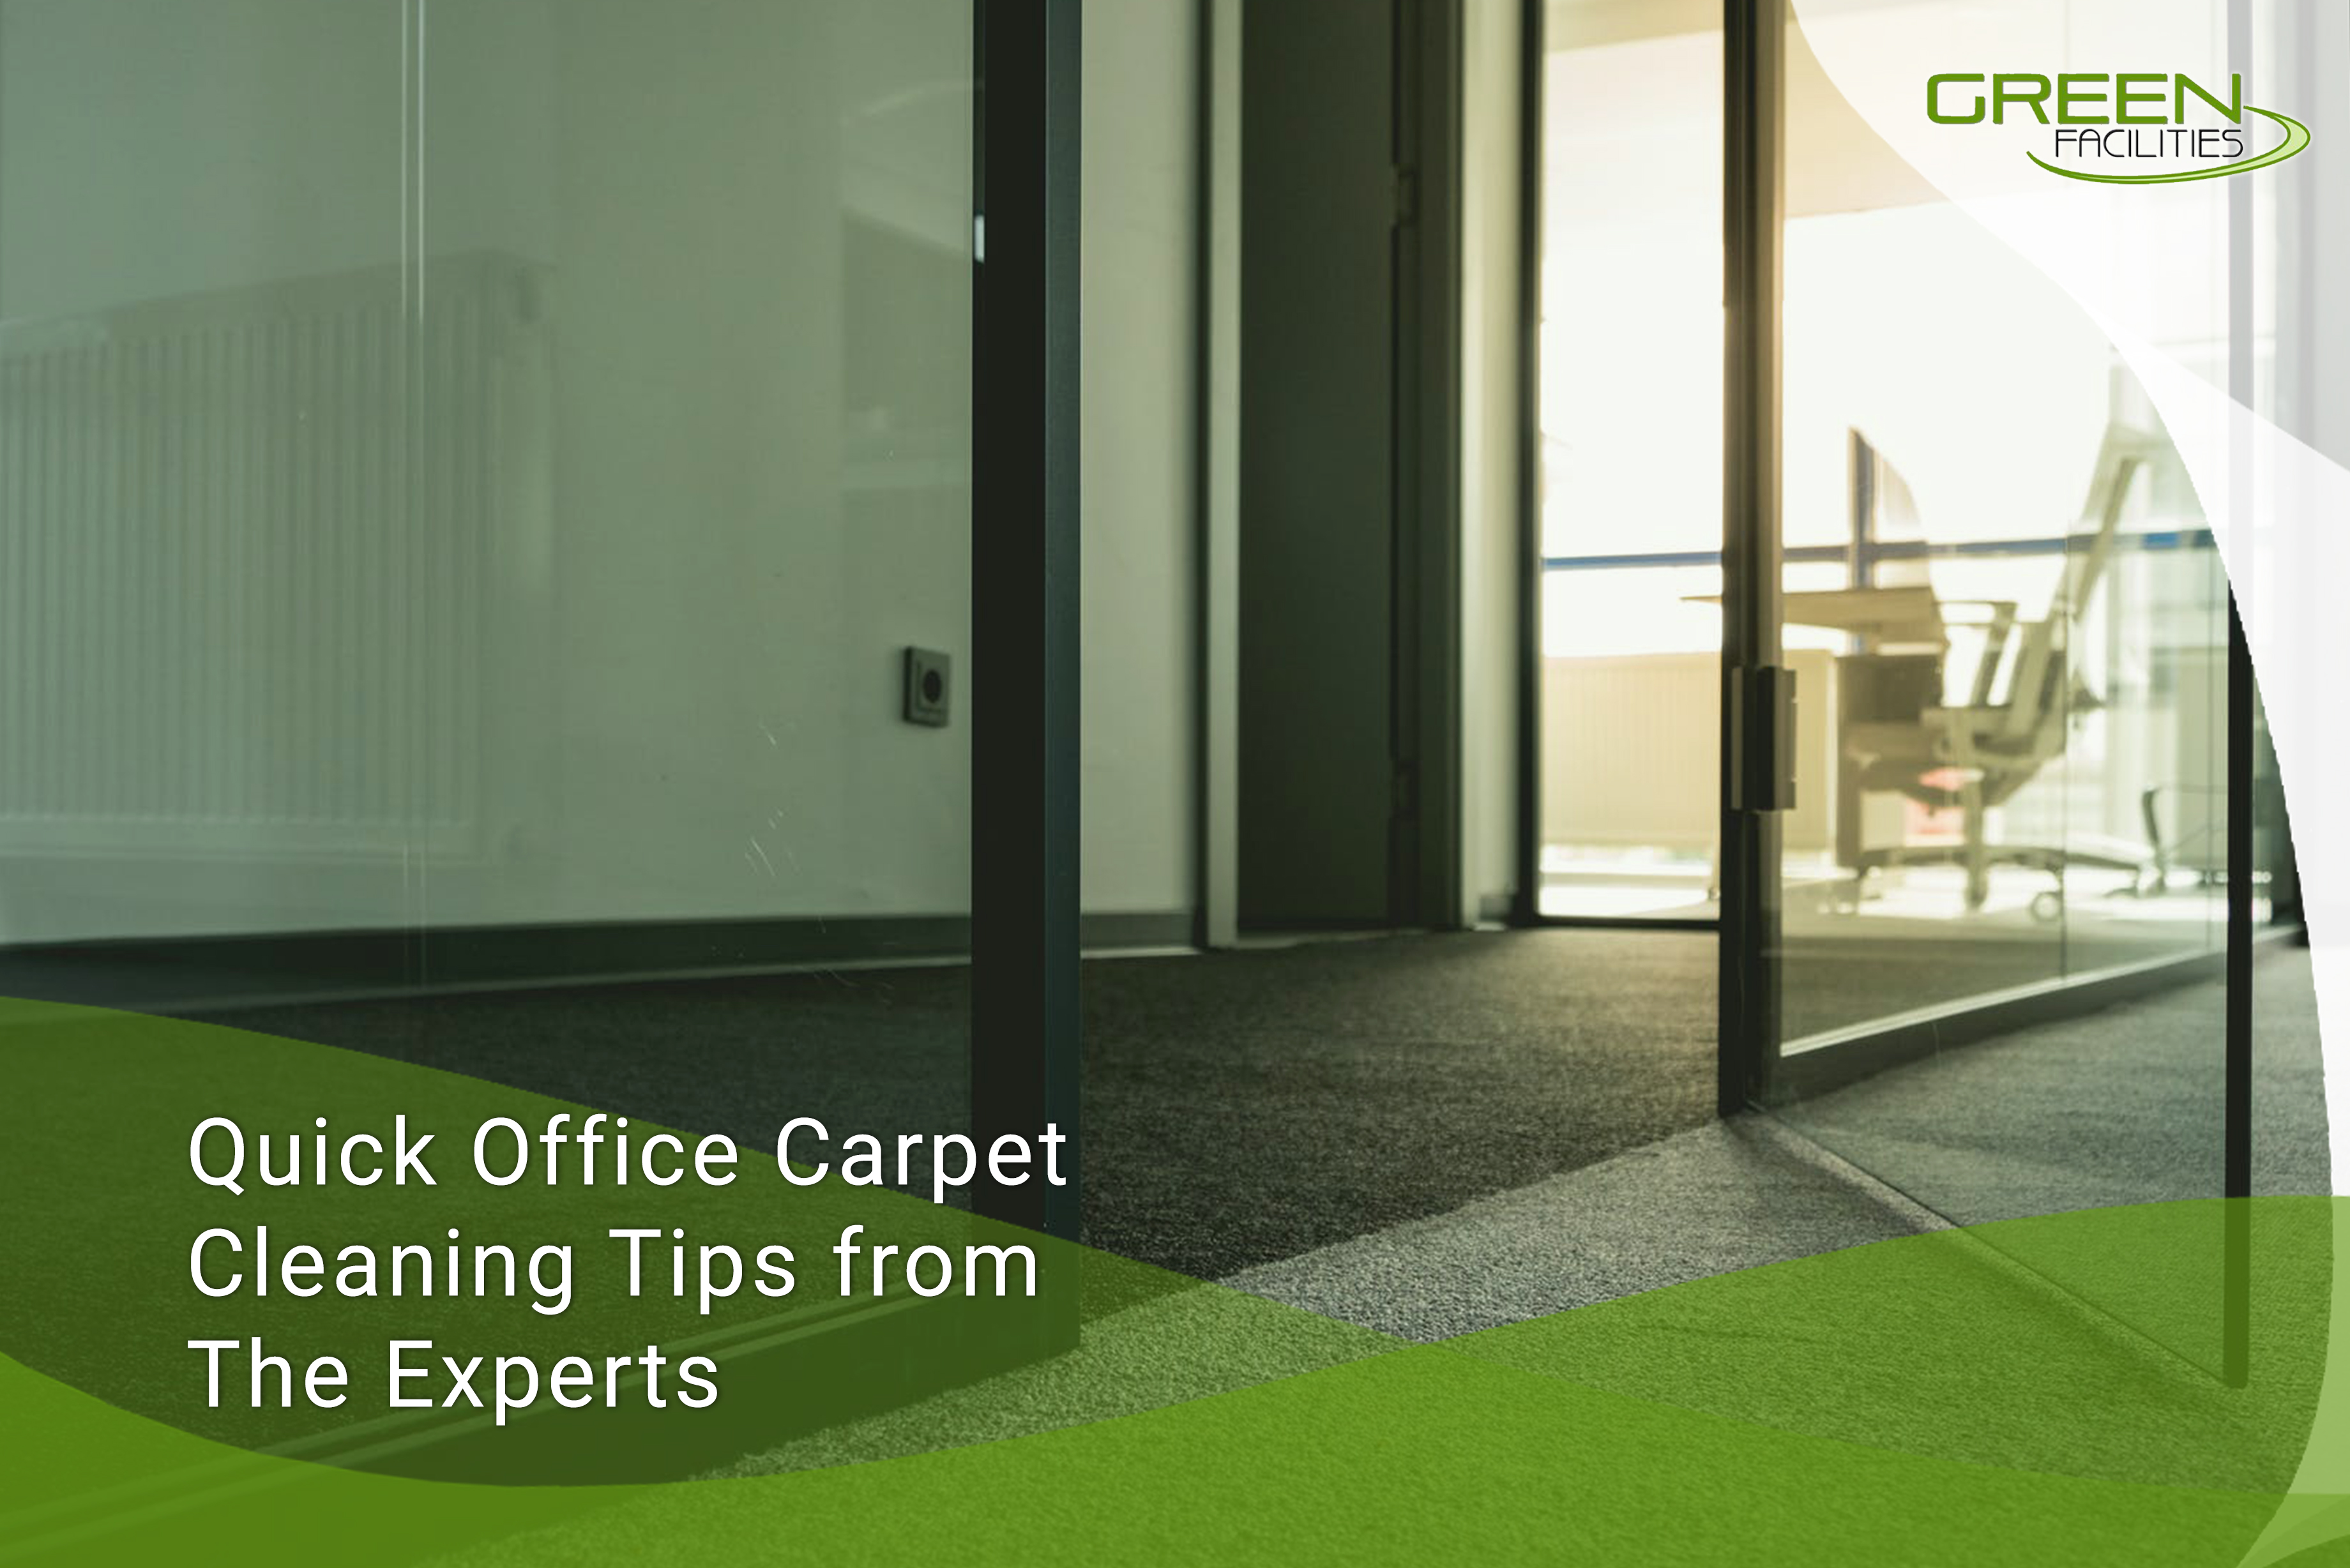 Quick Office Carpet Cleaning Tips from The Experts